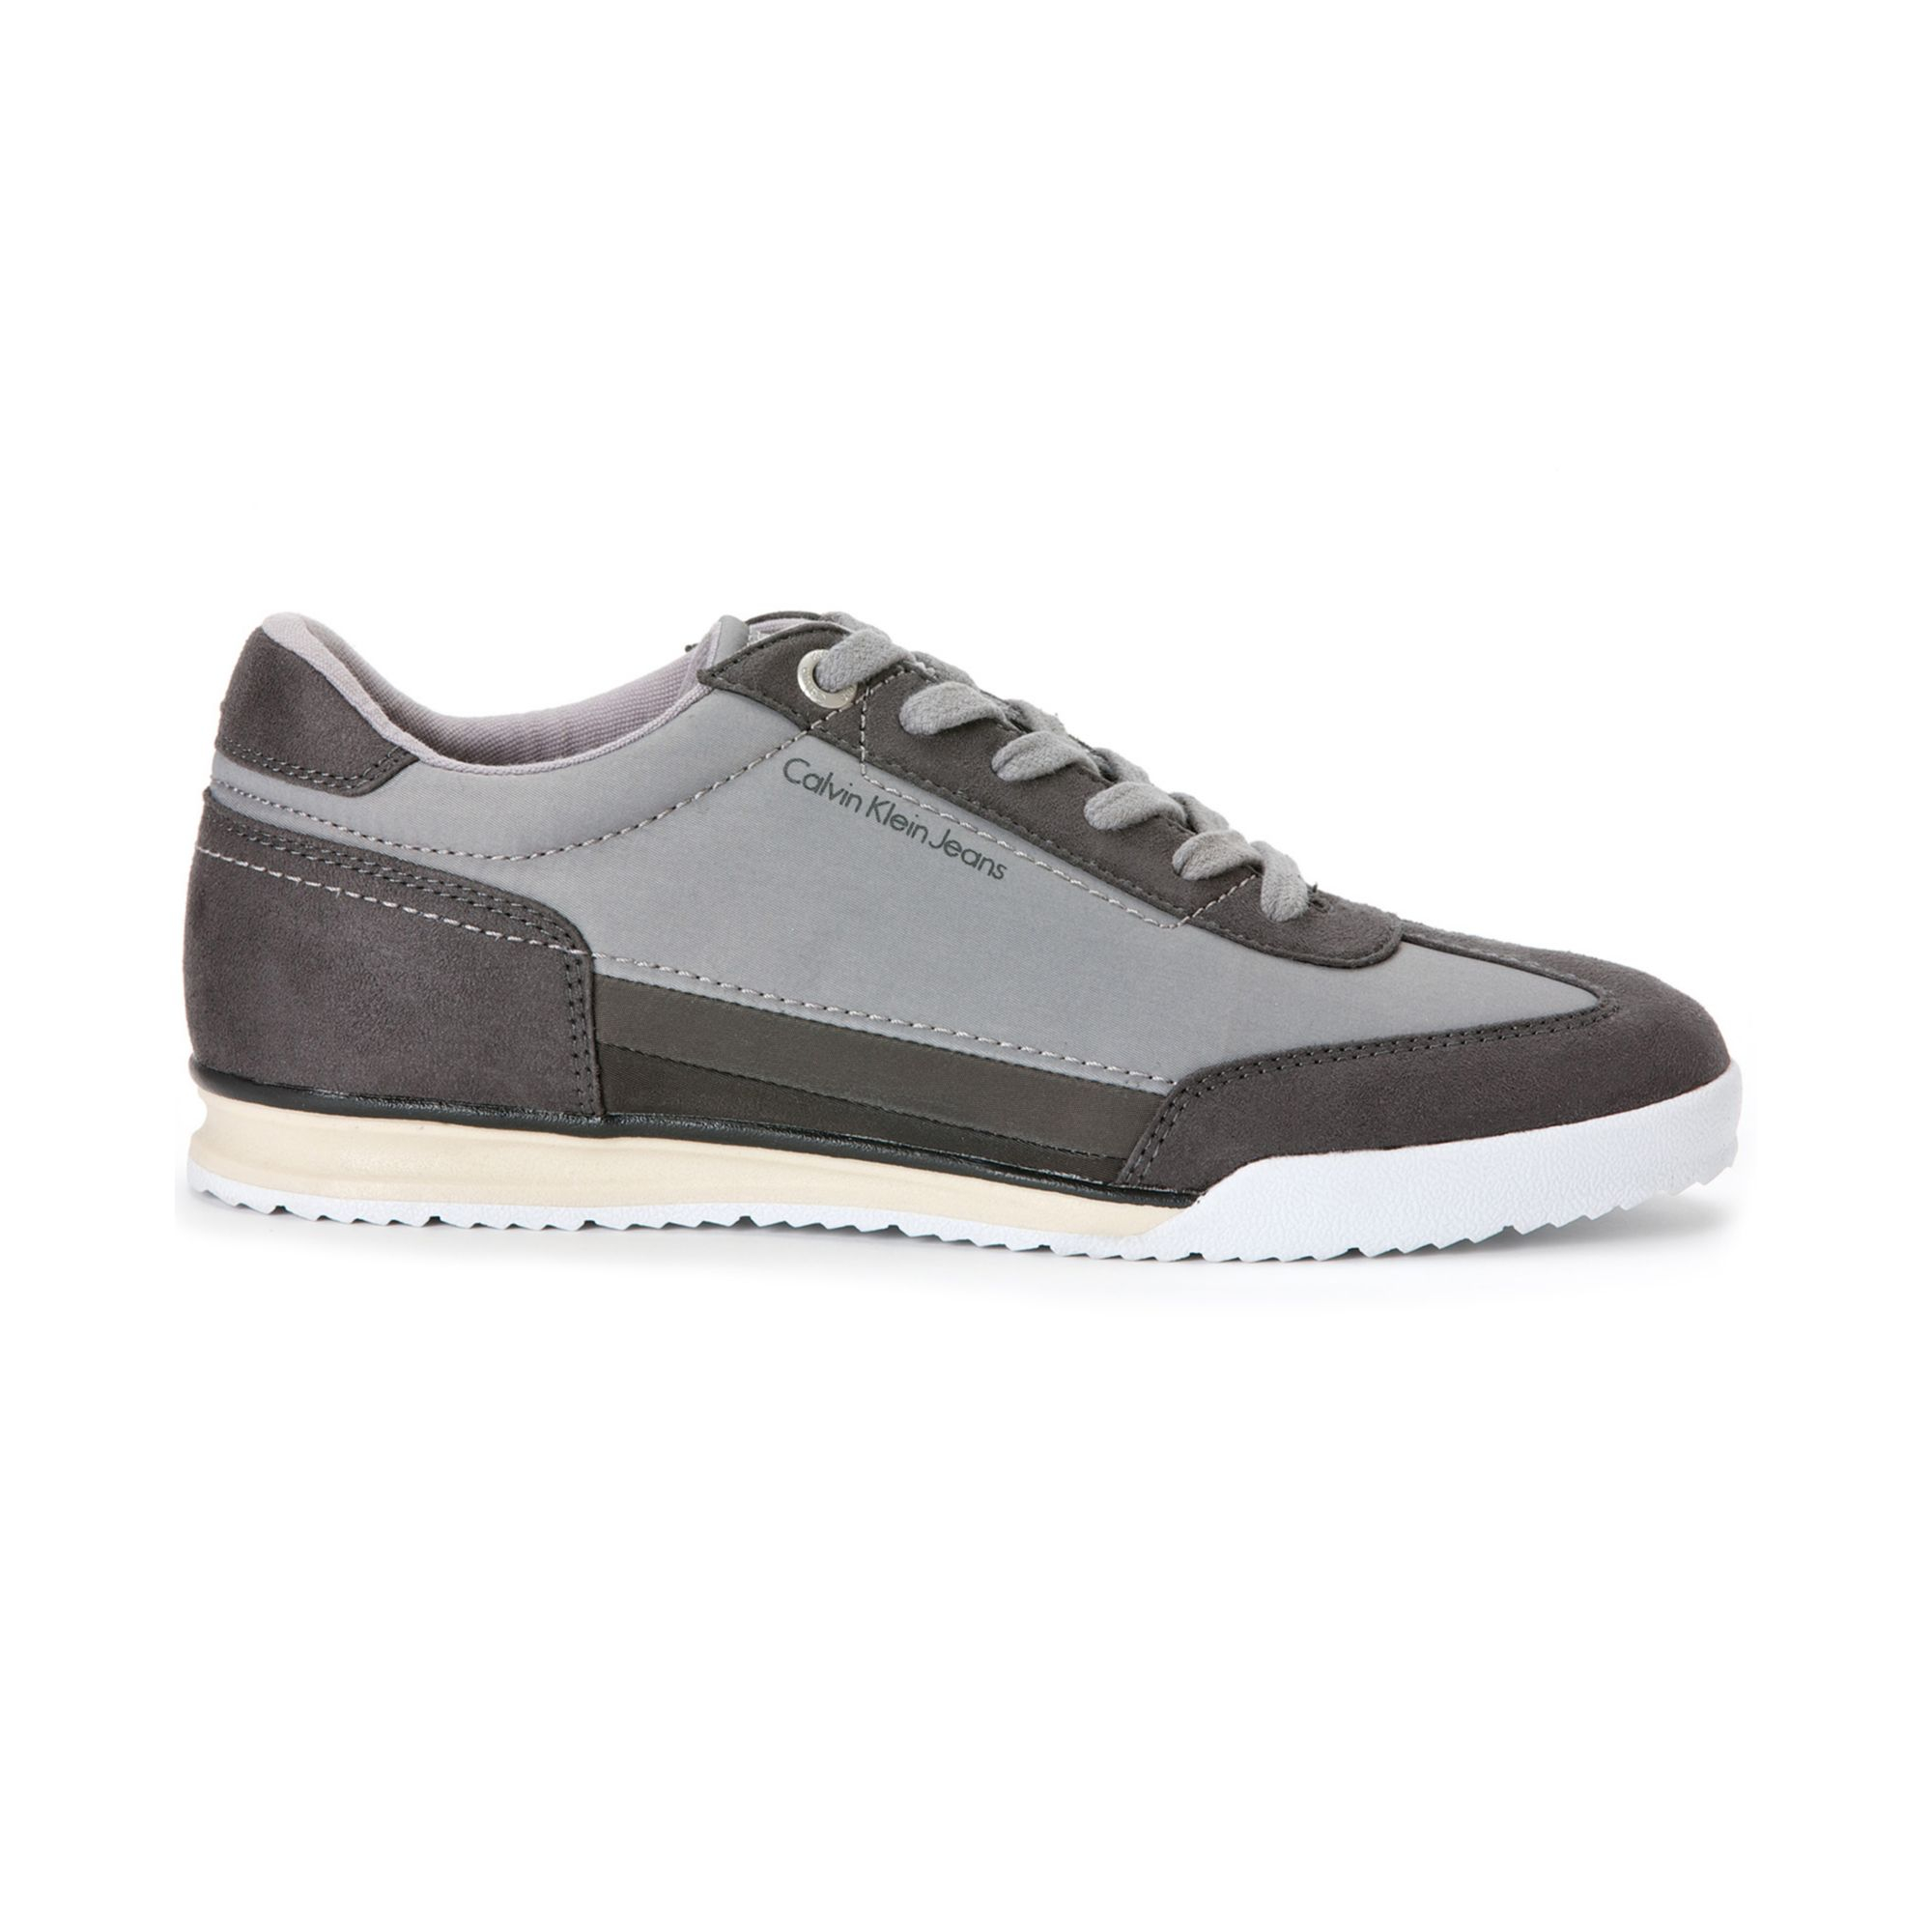 calvin klein ruben sneakers in gray for men lyst. Black Bedroom Furniture Sets. Home Design Ideas